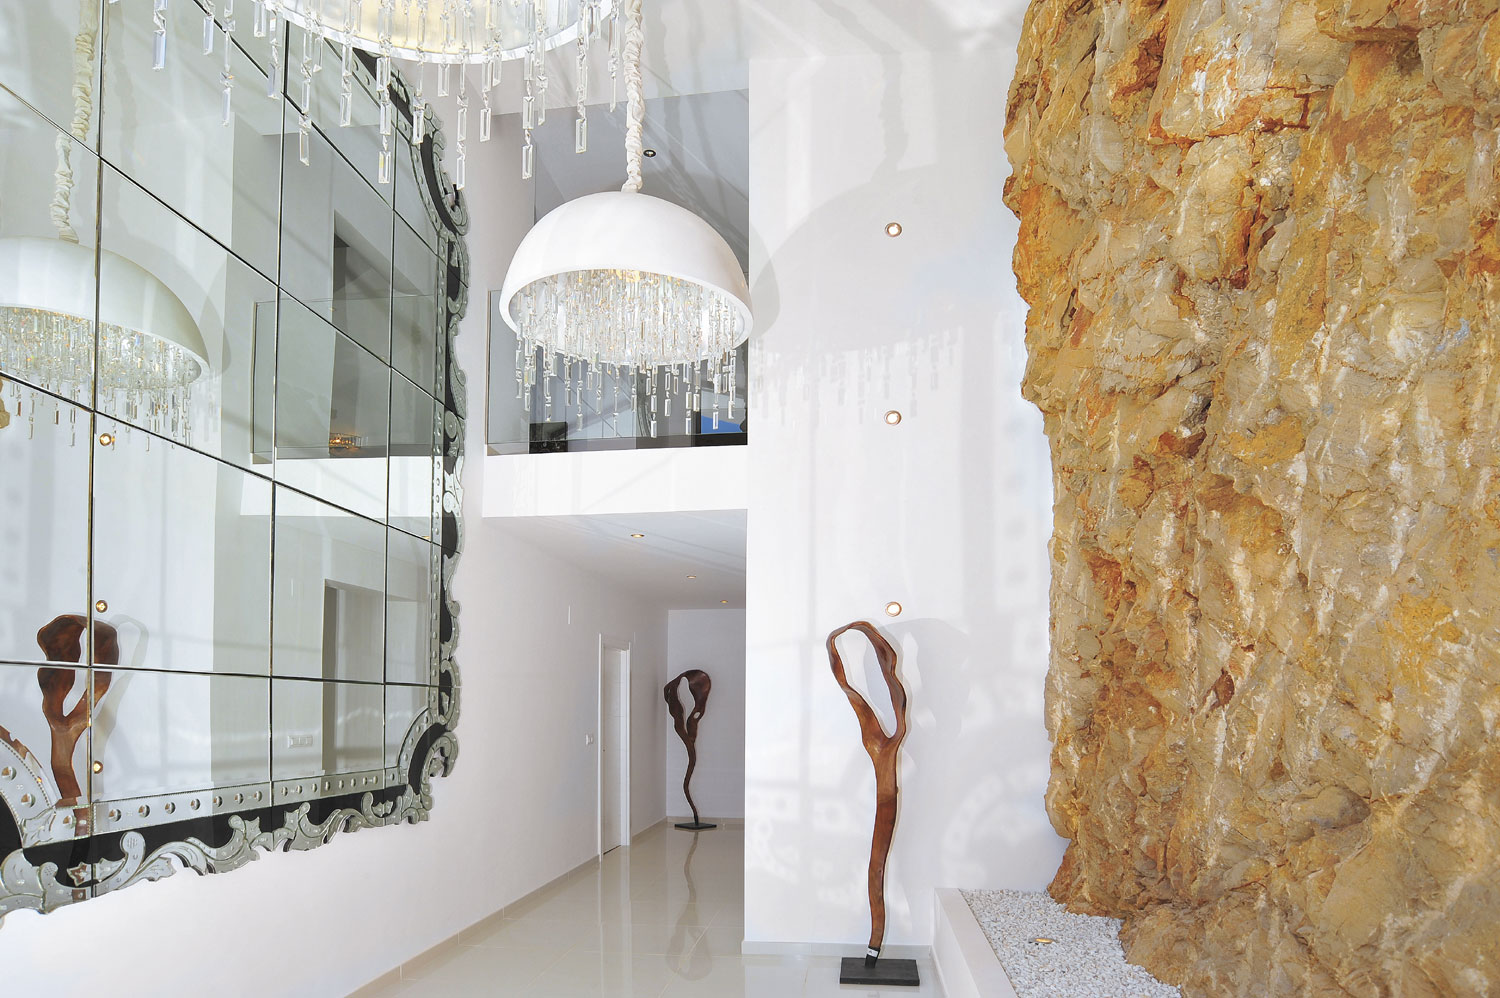 A gallery entrance with sculptural light fixtures, housed in a lighthouse-style rotunda facing the sea, lends to the luster of this Spanish villa on the Costa Blanca.